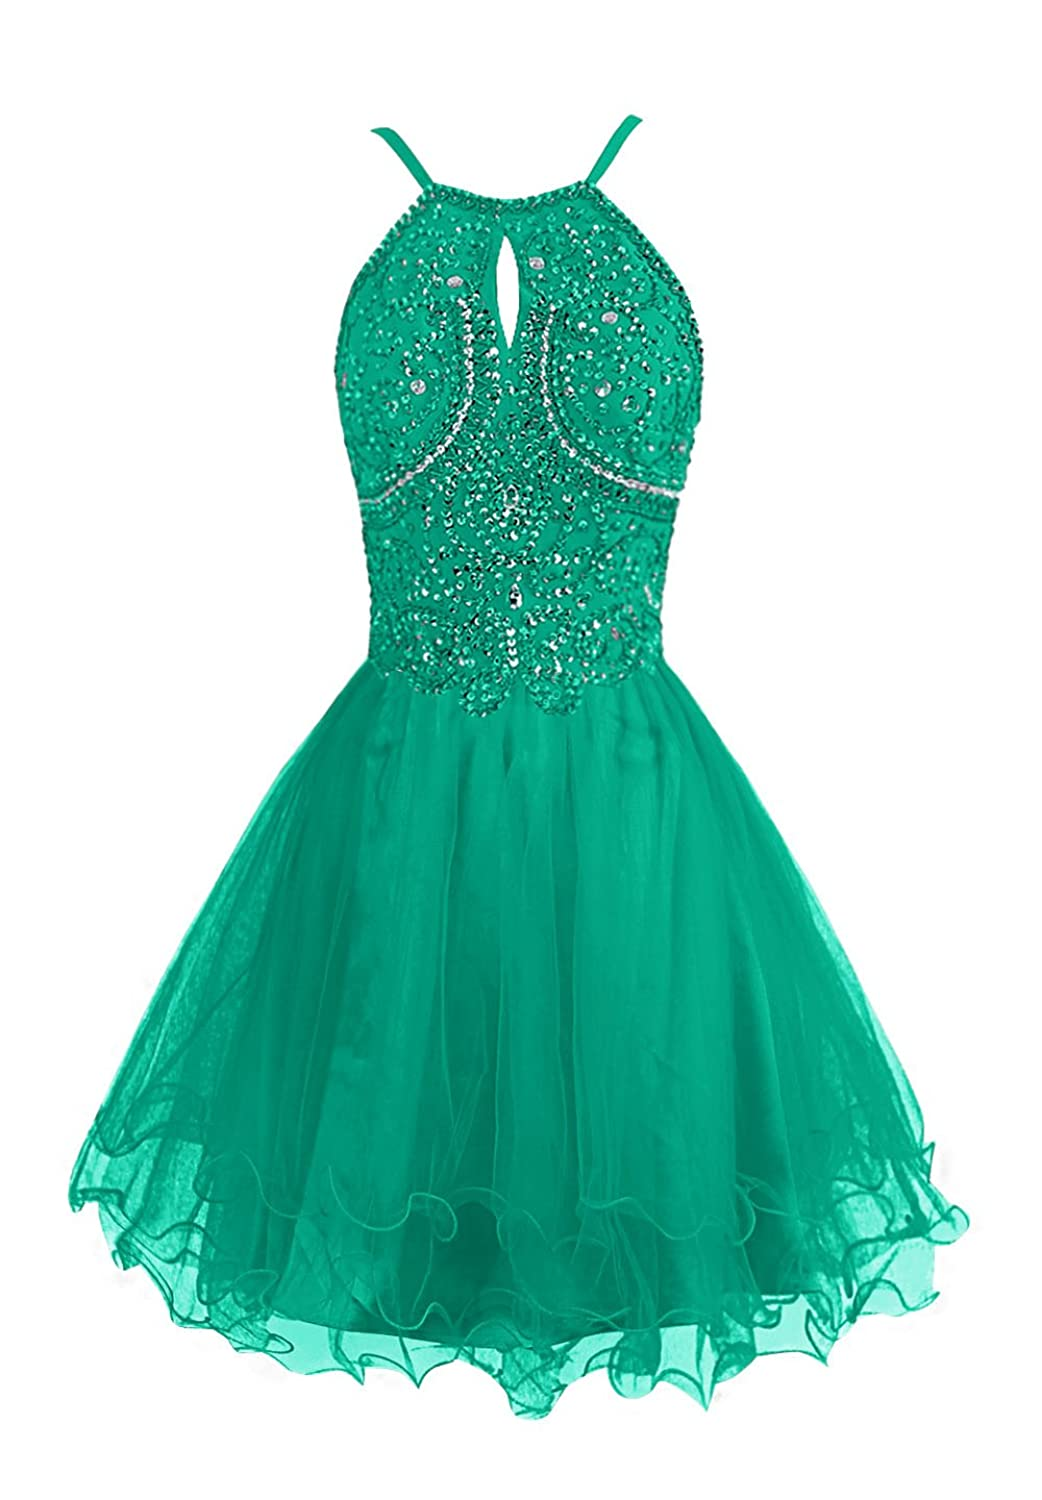 Dressystar Short Tulle Homecoming Prom Dress Spaghetti Straps Crystal Beaded Cocktail Gowns 88937